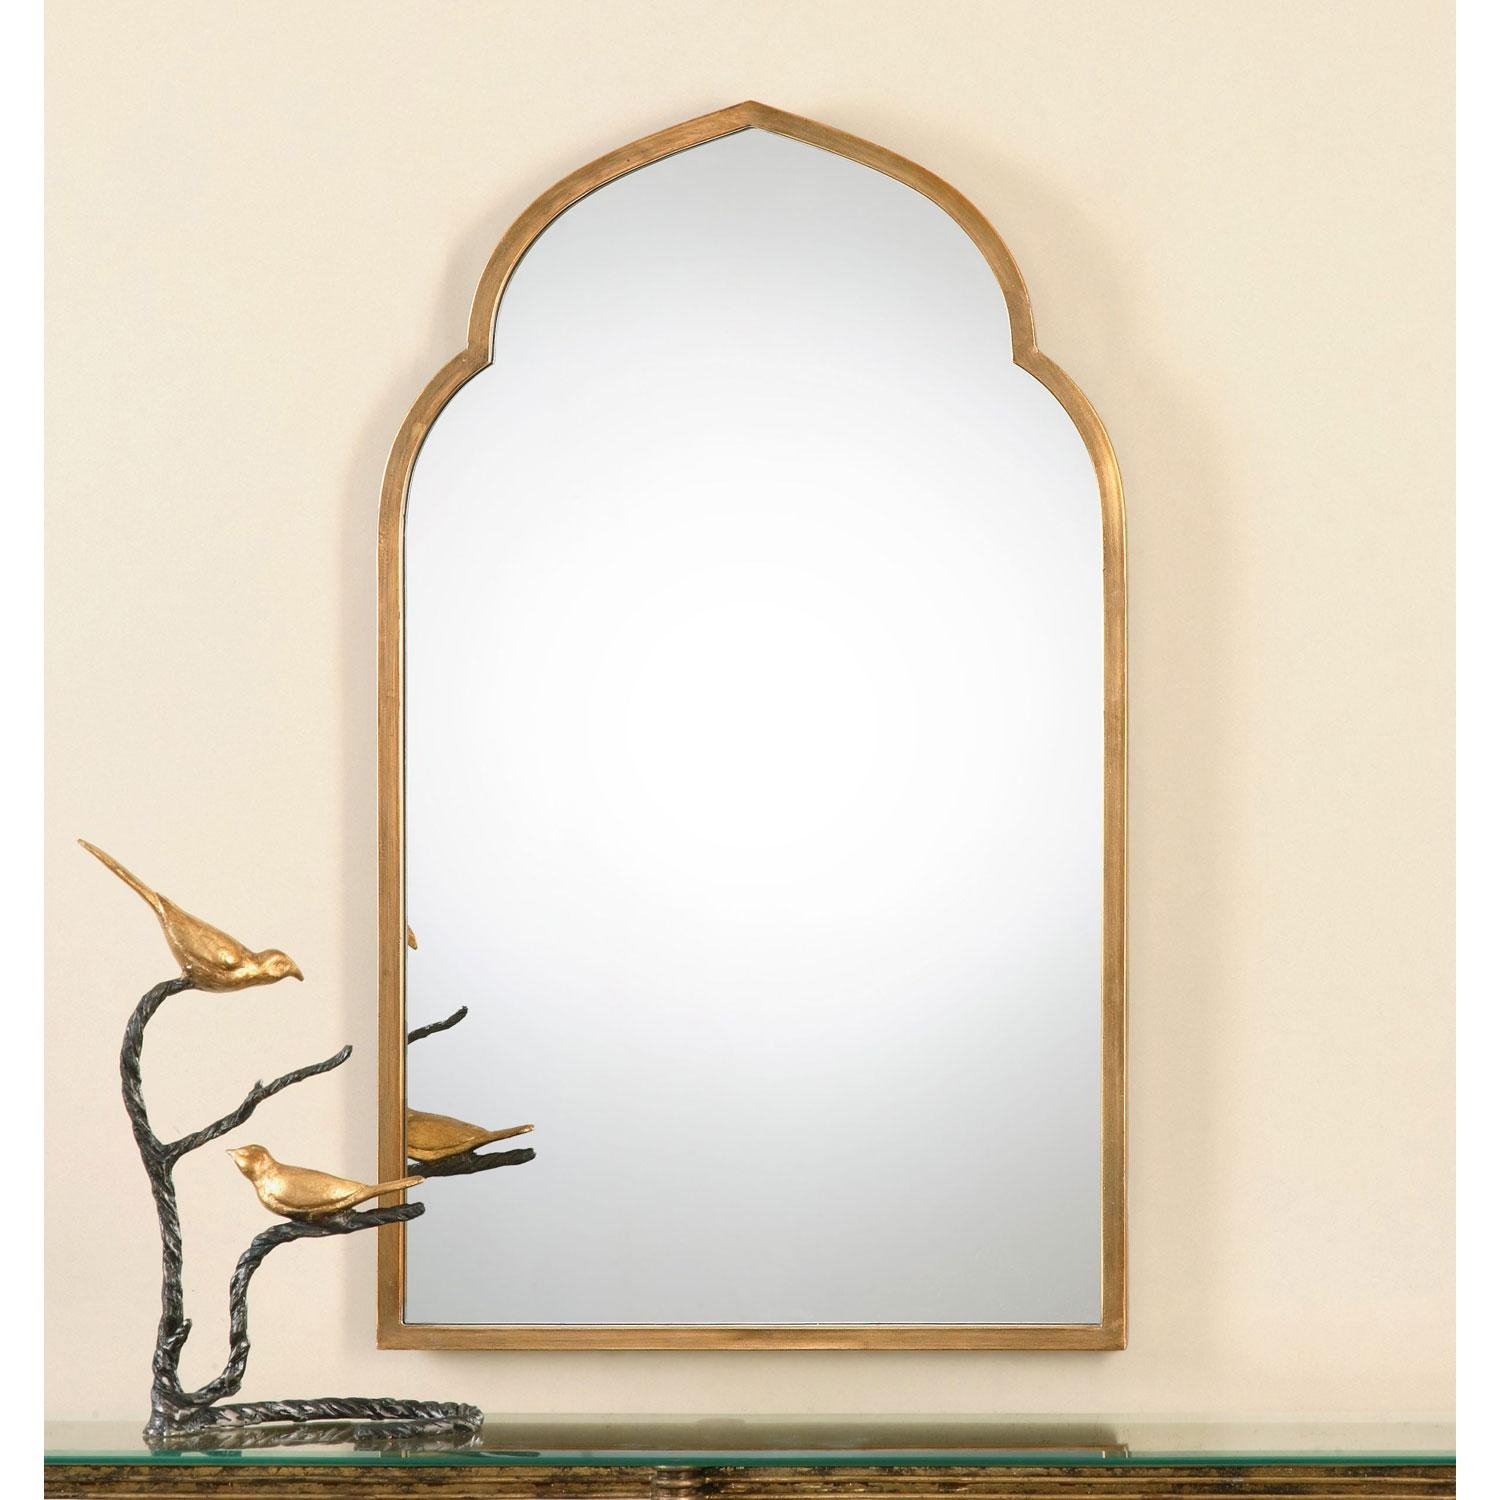 Kenitra Gold Arch Mirror Uttermost Wall Mirror Mirrors Home Decor Within Gold Arch Mirror (Image 11 of 20)